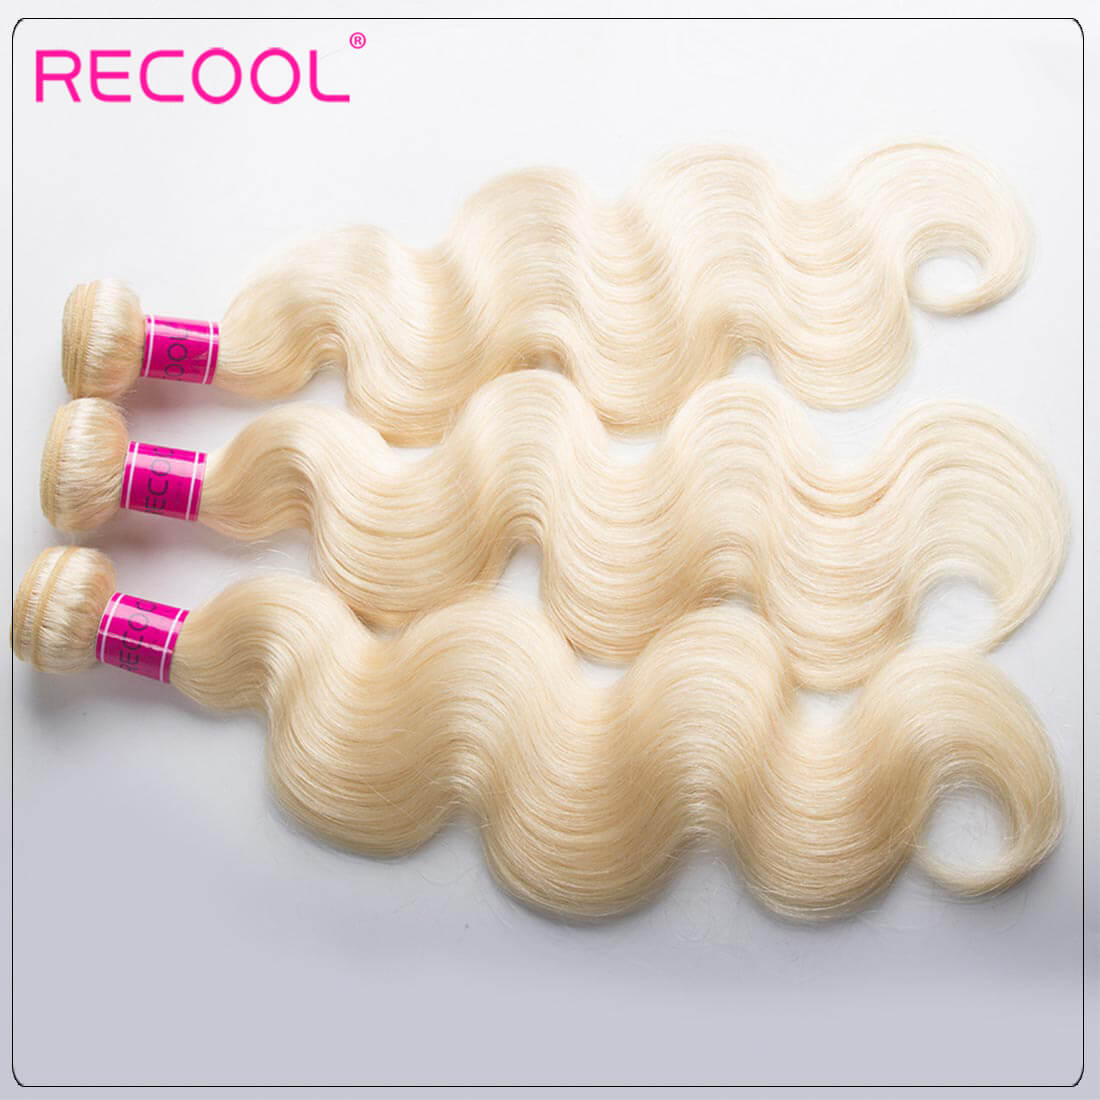 Blonde Hair Bundles 613 Virgin Hair Body Wave, 100% Virgin Blonde Human Hair Weave Body Wave Bundles 2